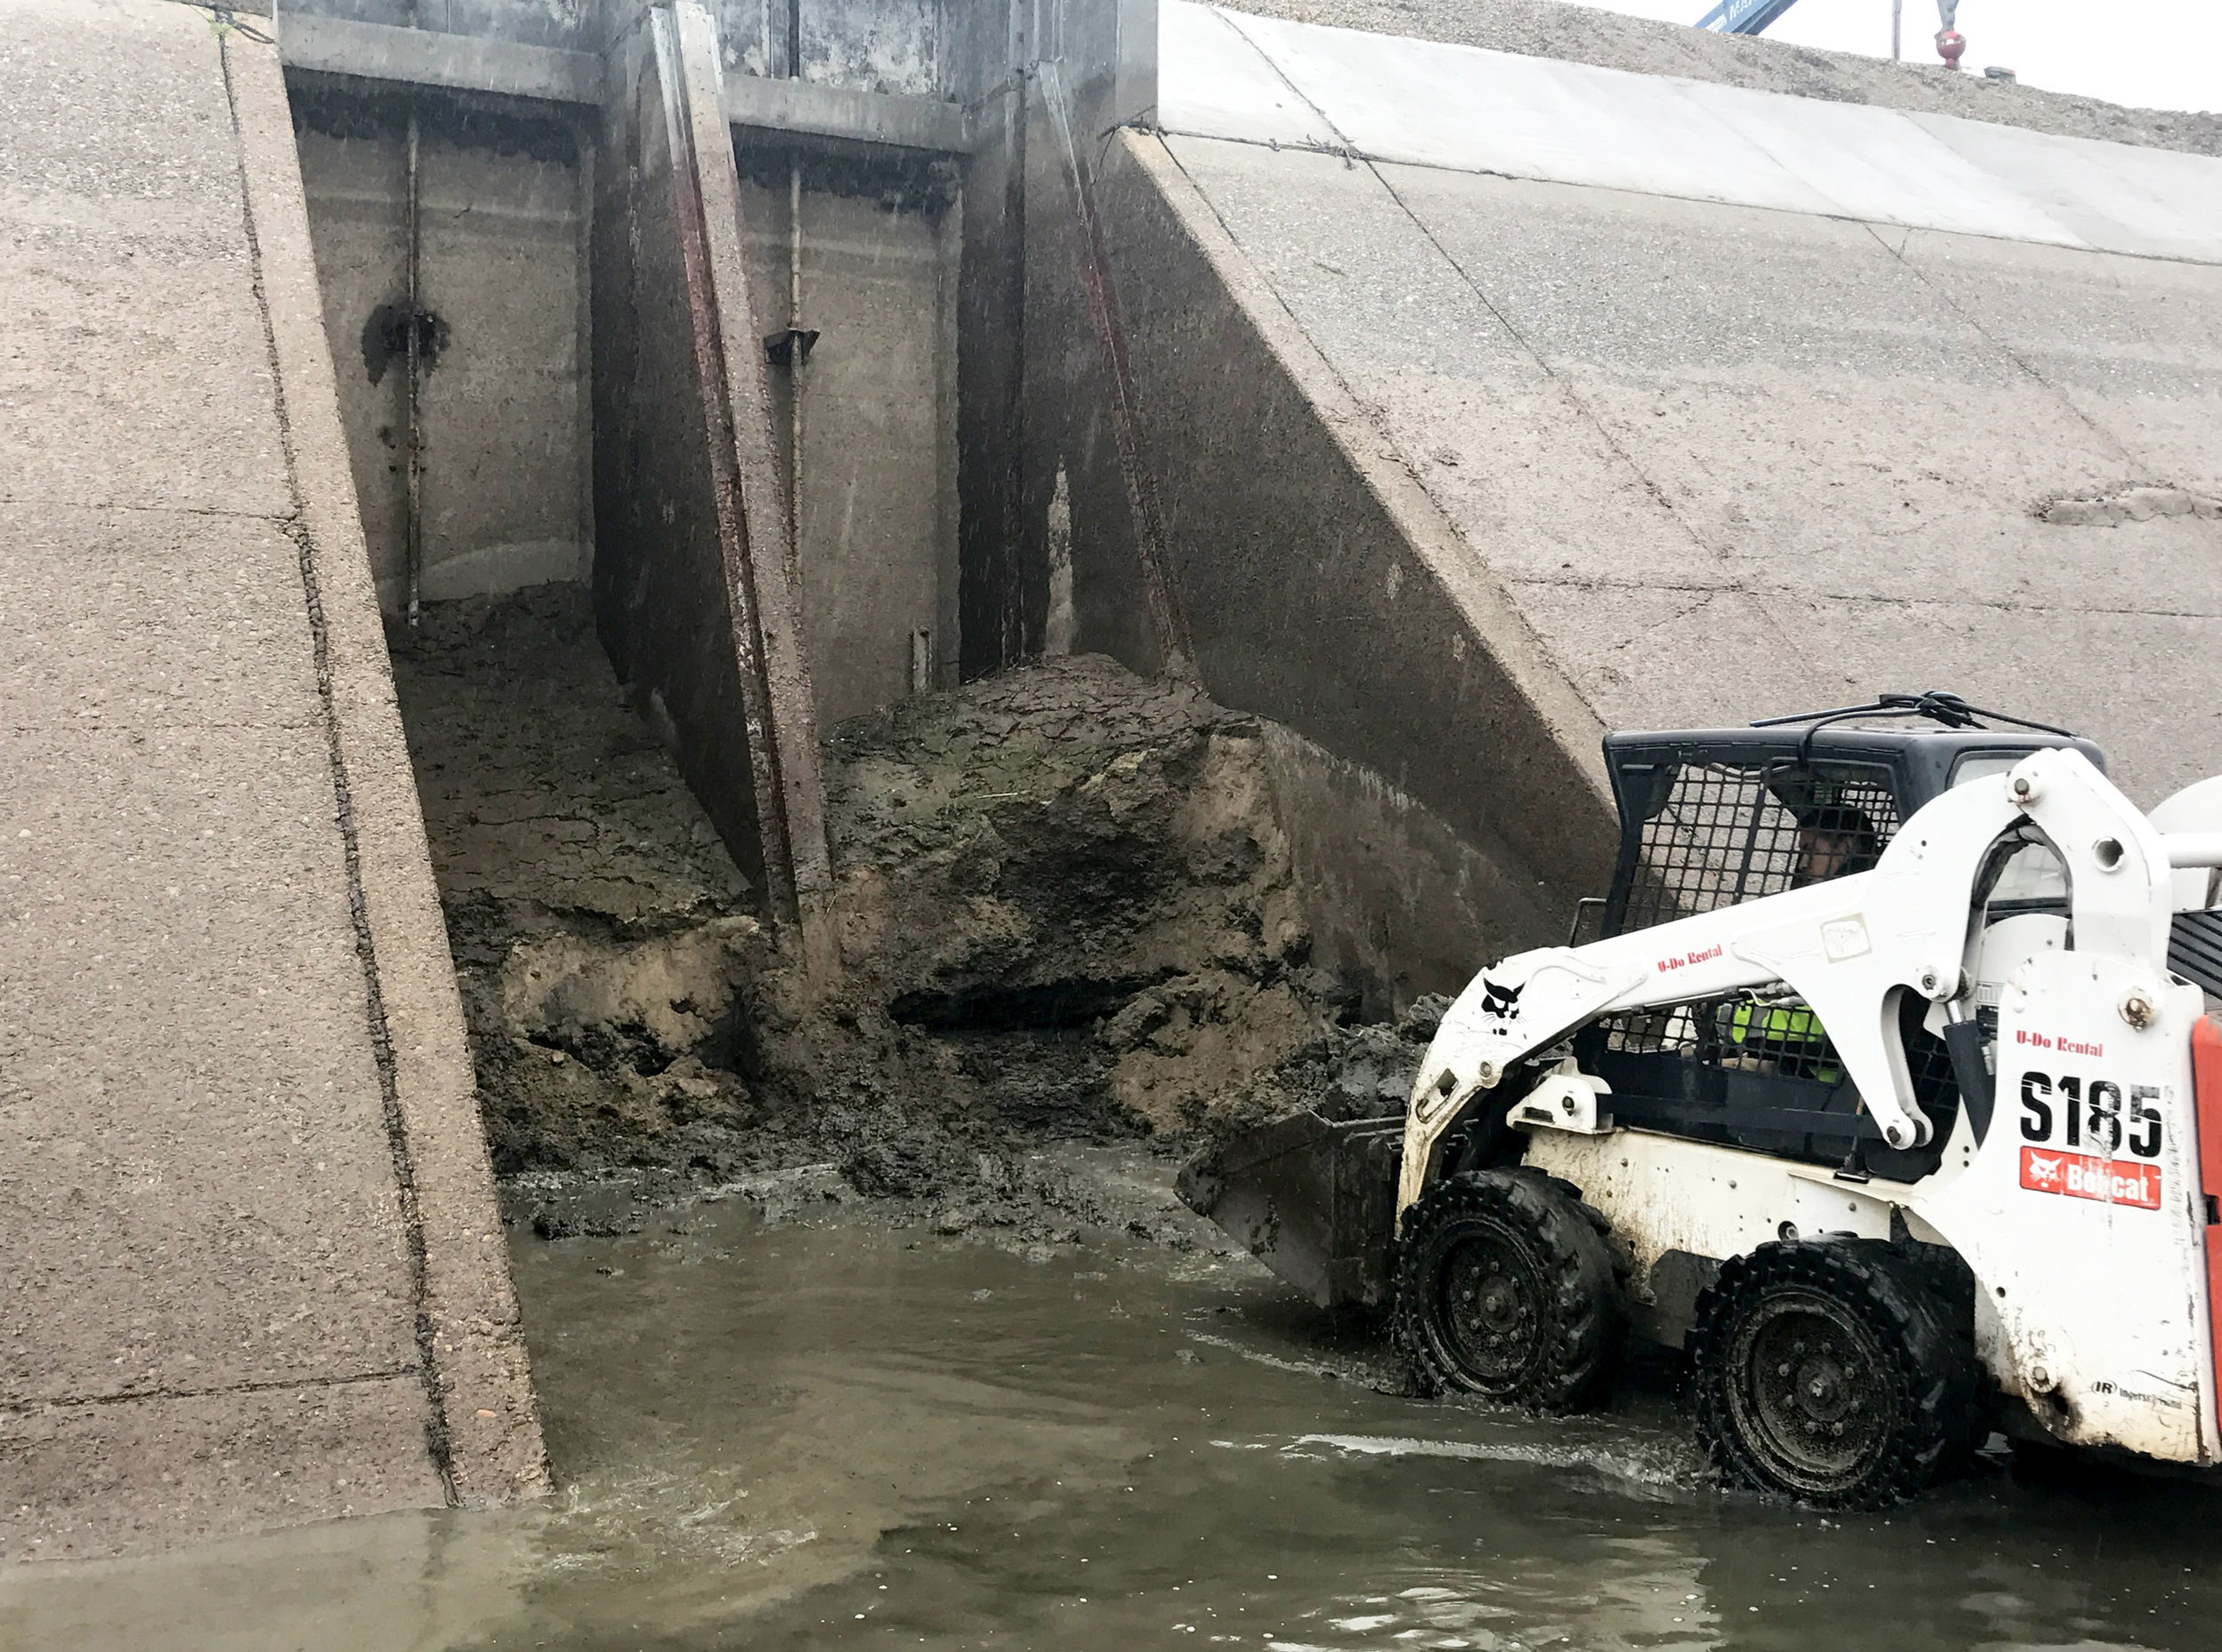 Turnout being cleared of silt and debris along the Friant Kern Canal